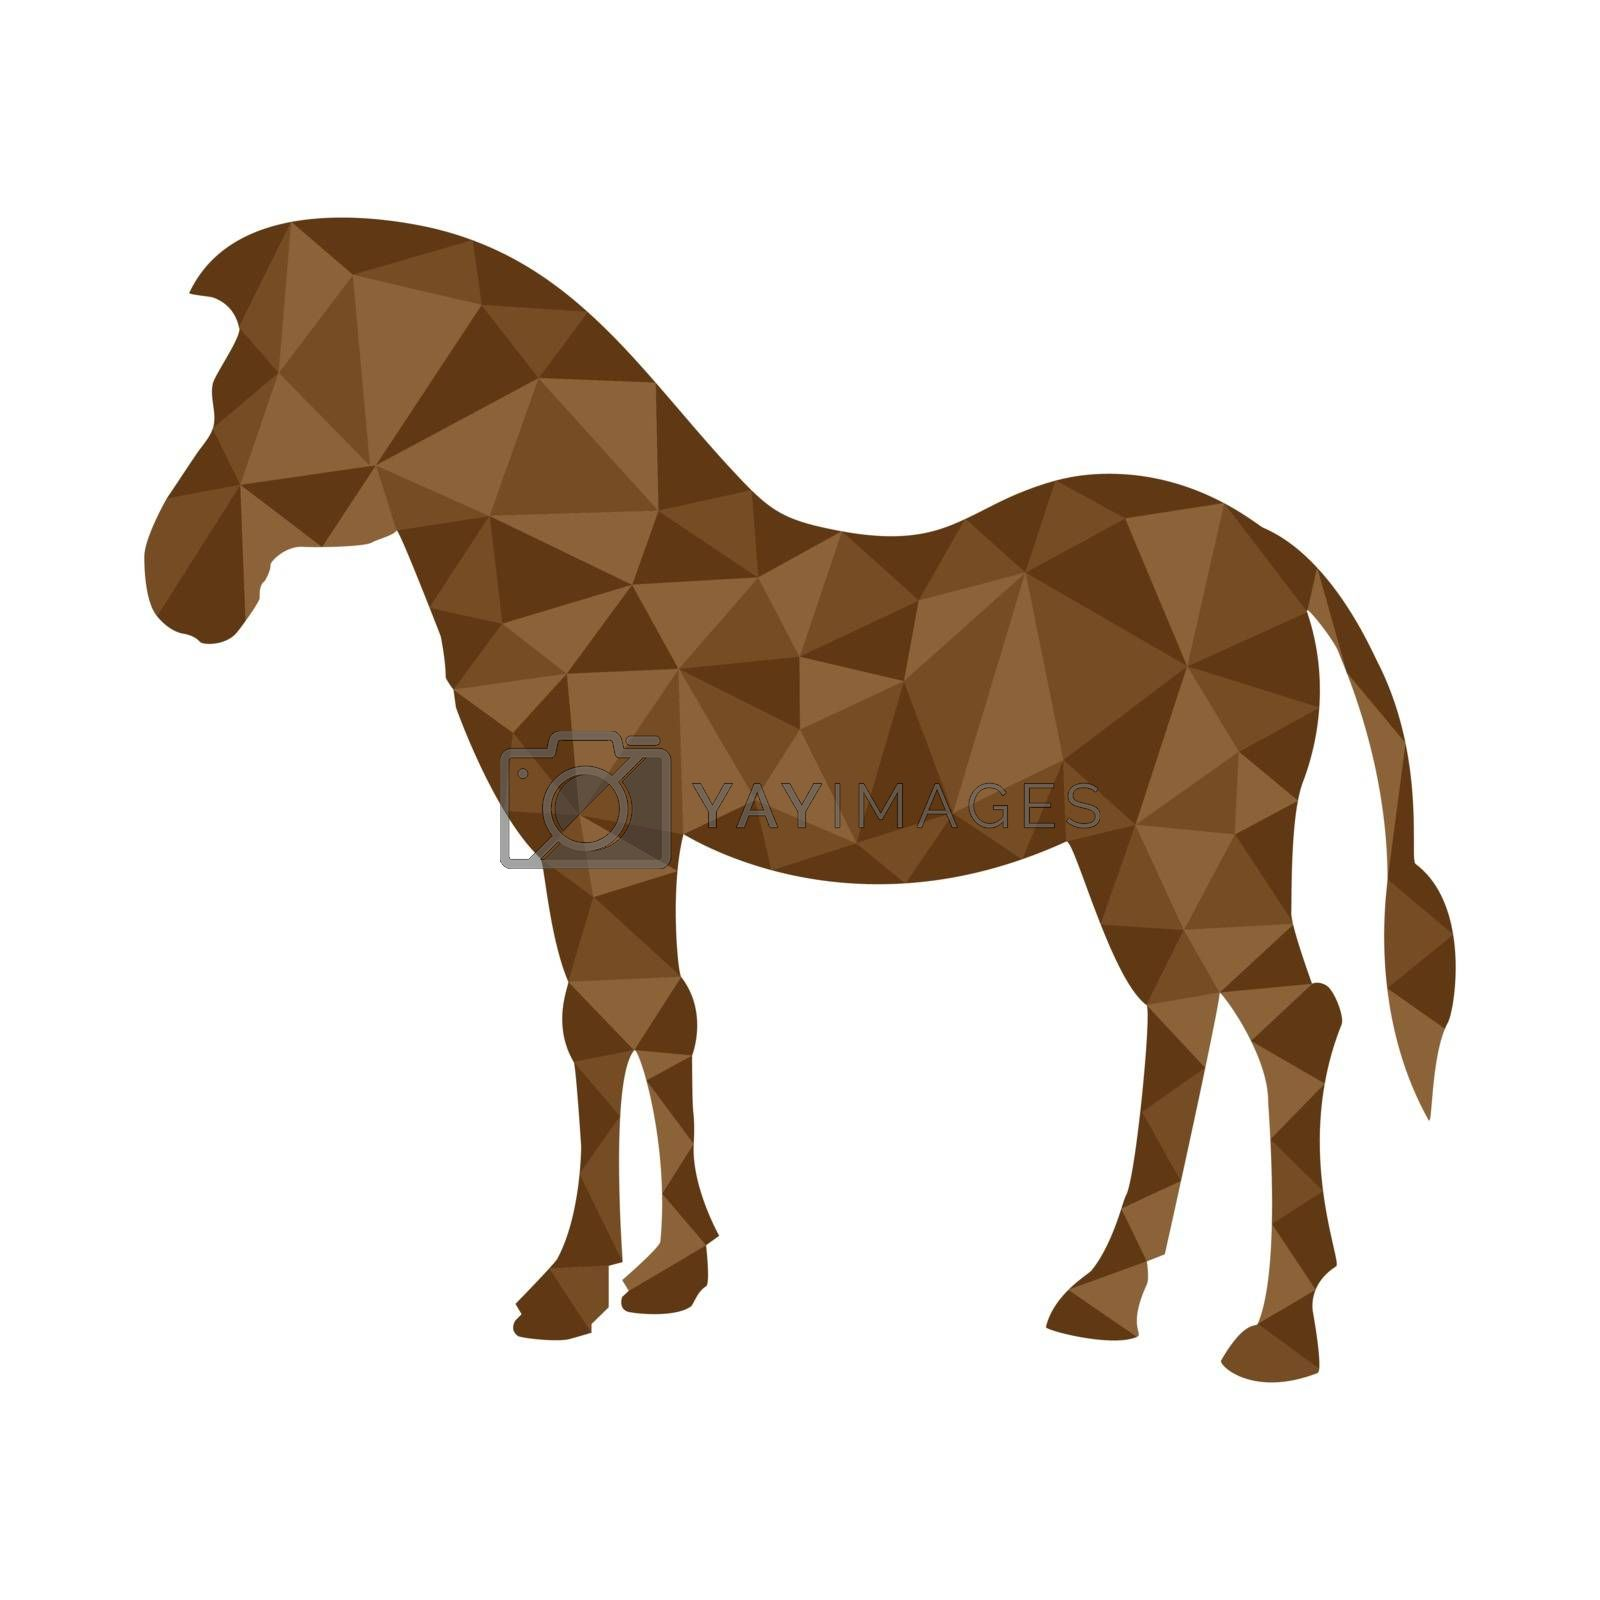 Horse silhouette in polygonal style for design and decoration